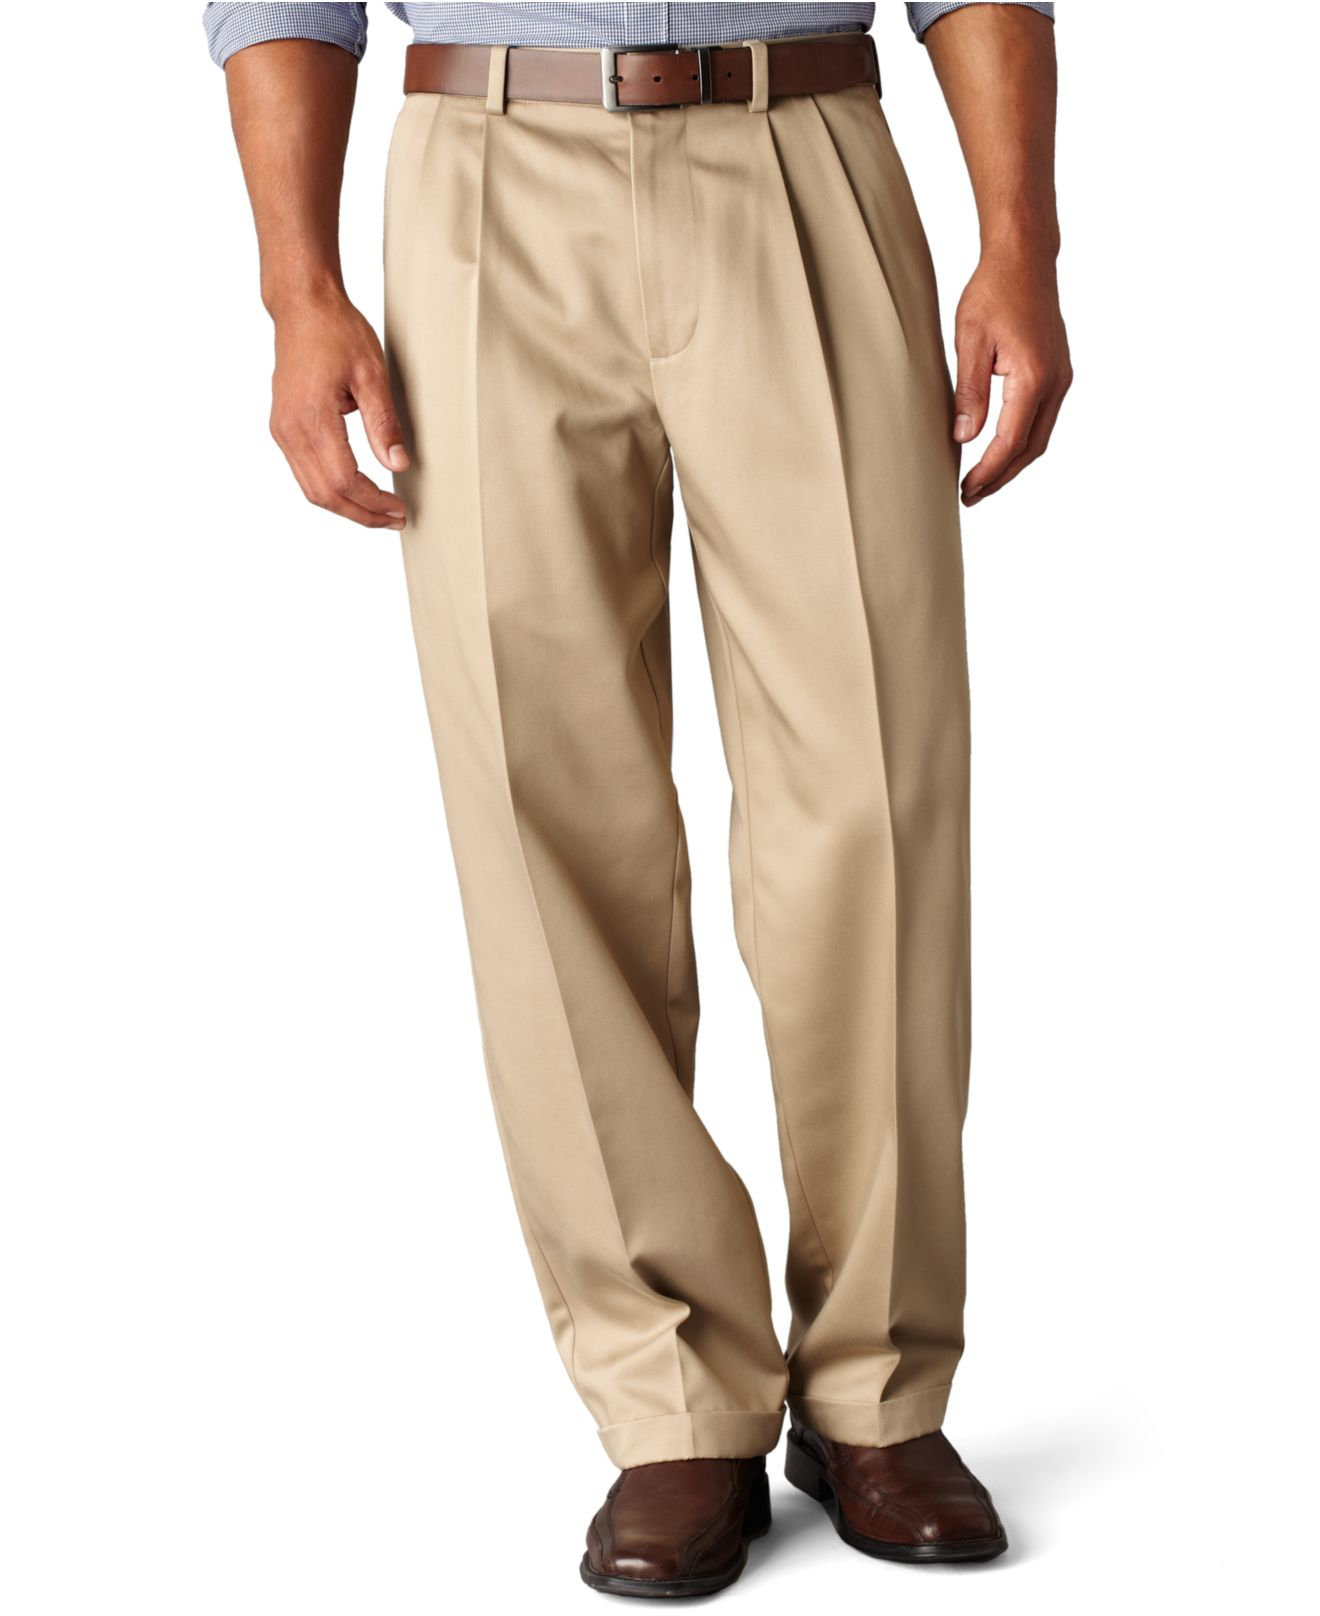 Iron Pleated Pants